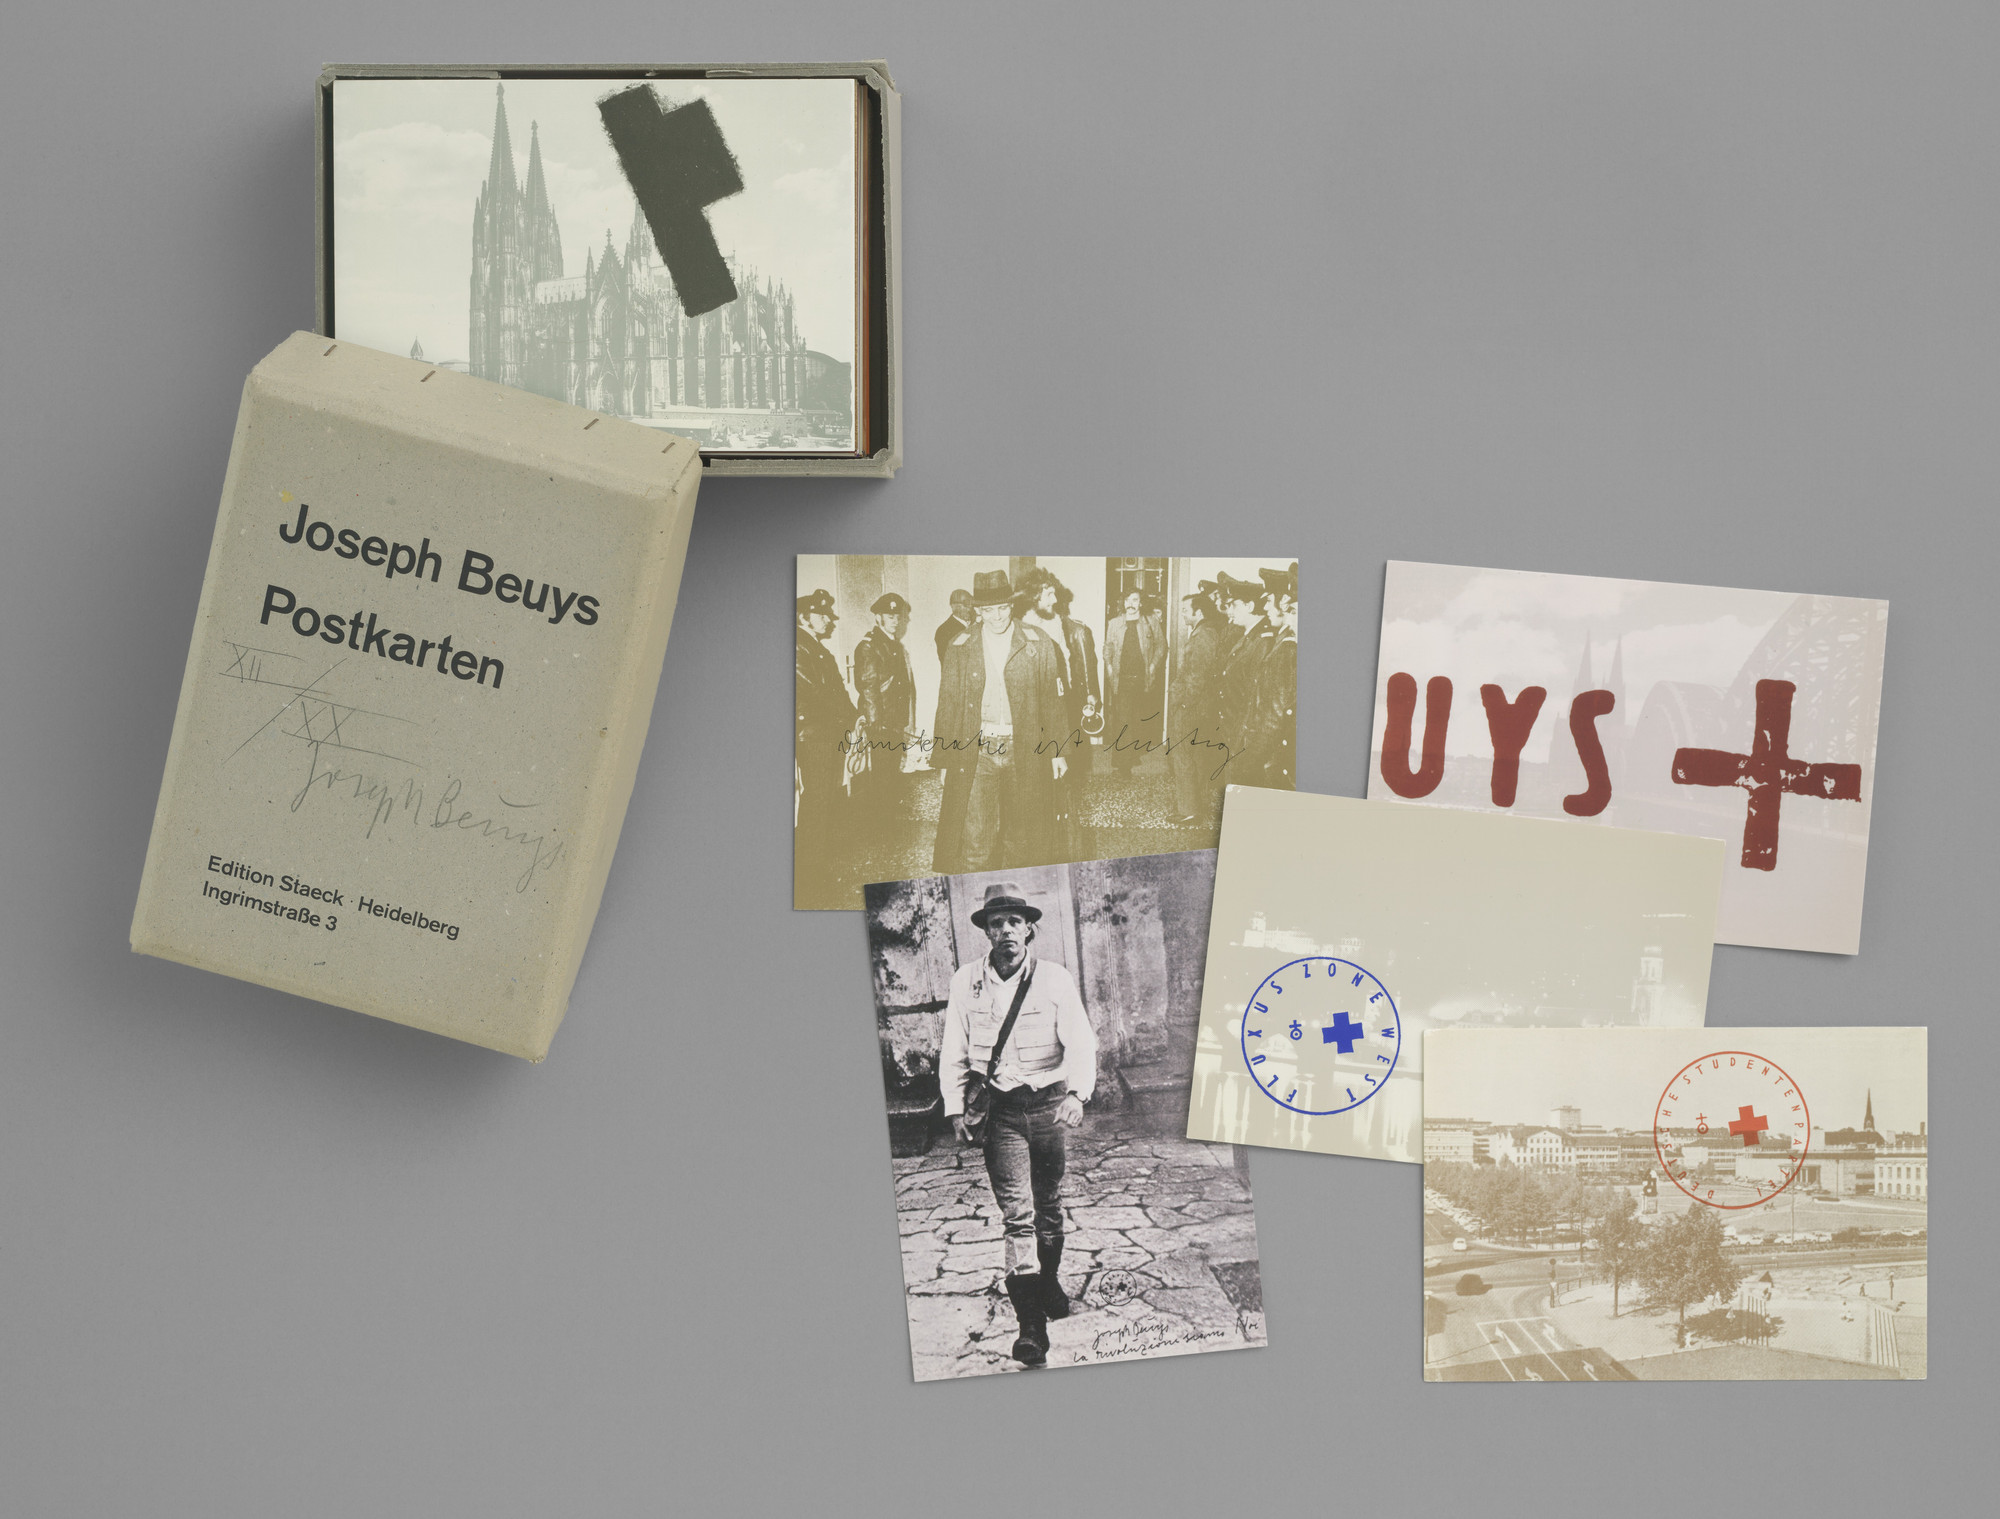 Joseph Beuys. Postcards 1968–1974 (Postkarten 1968–1974). 1968–74, published 1974